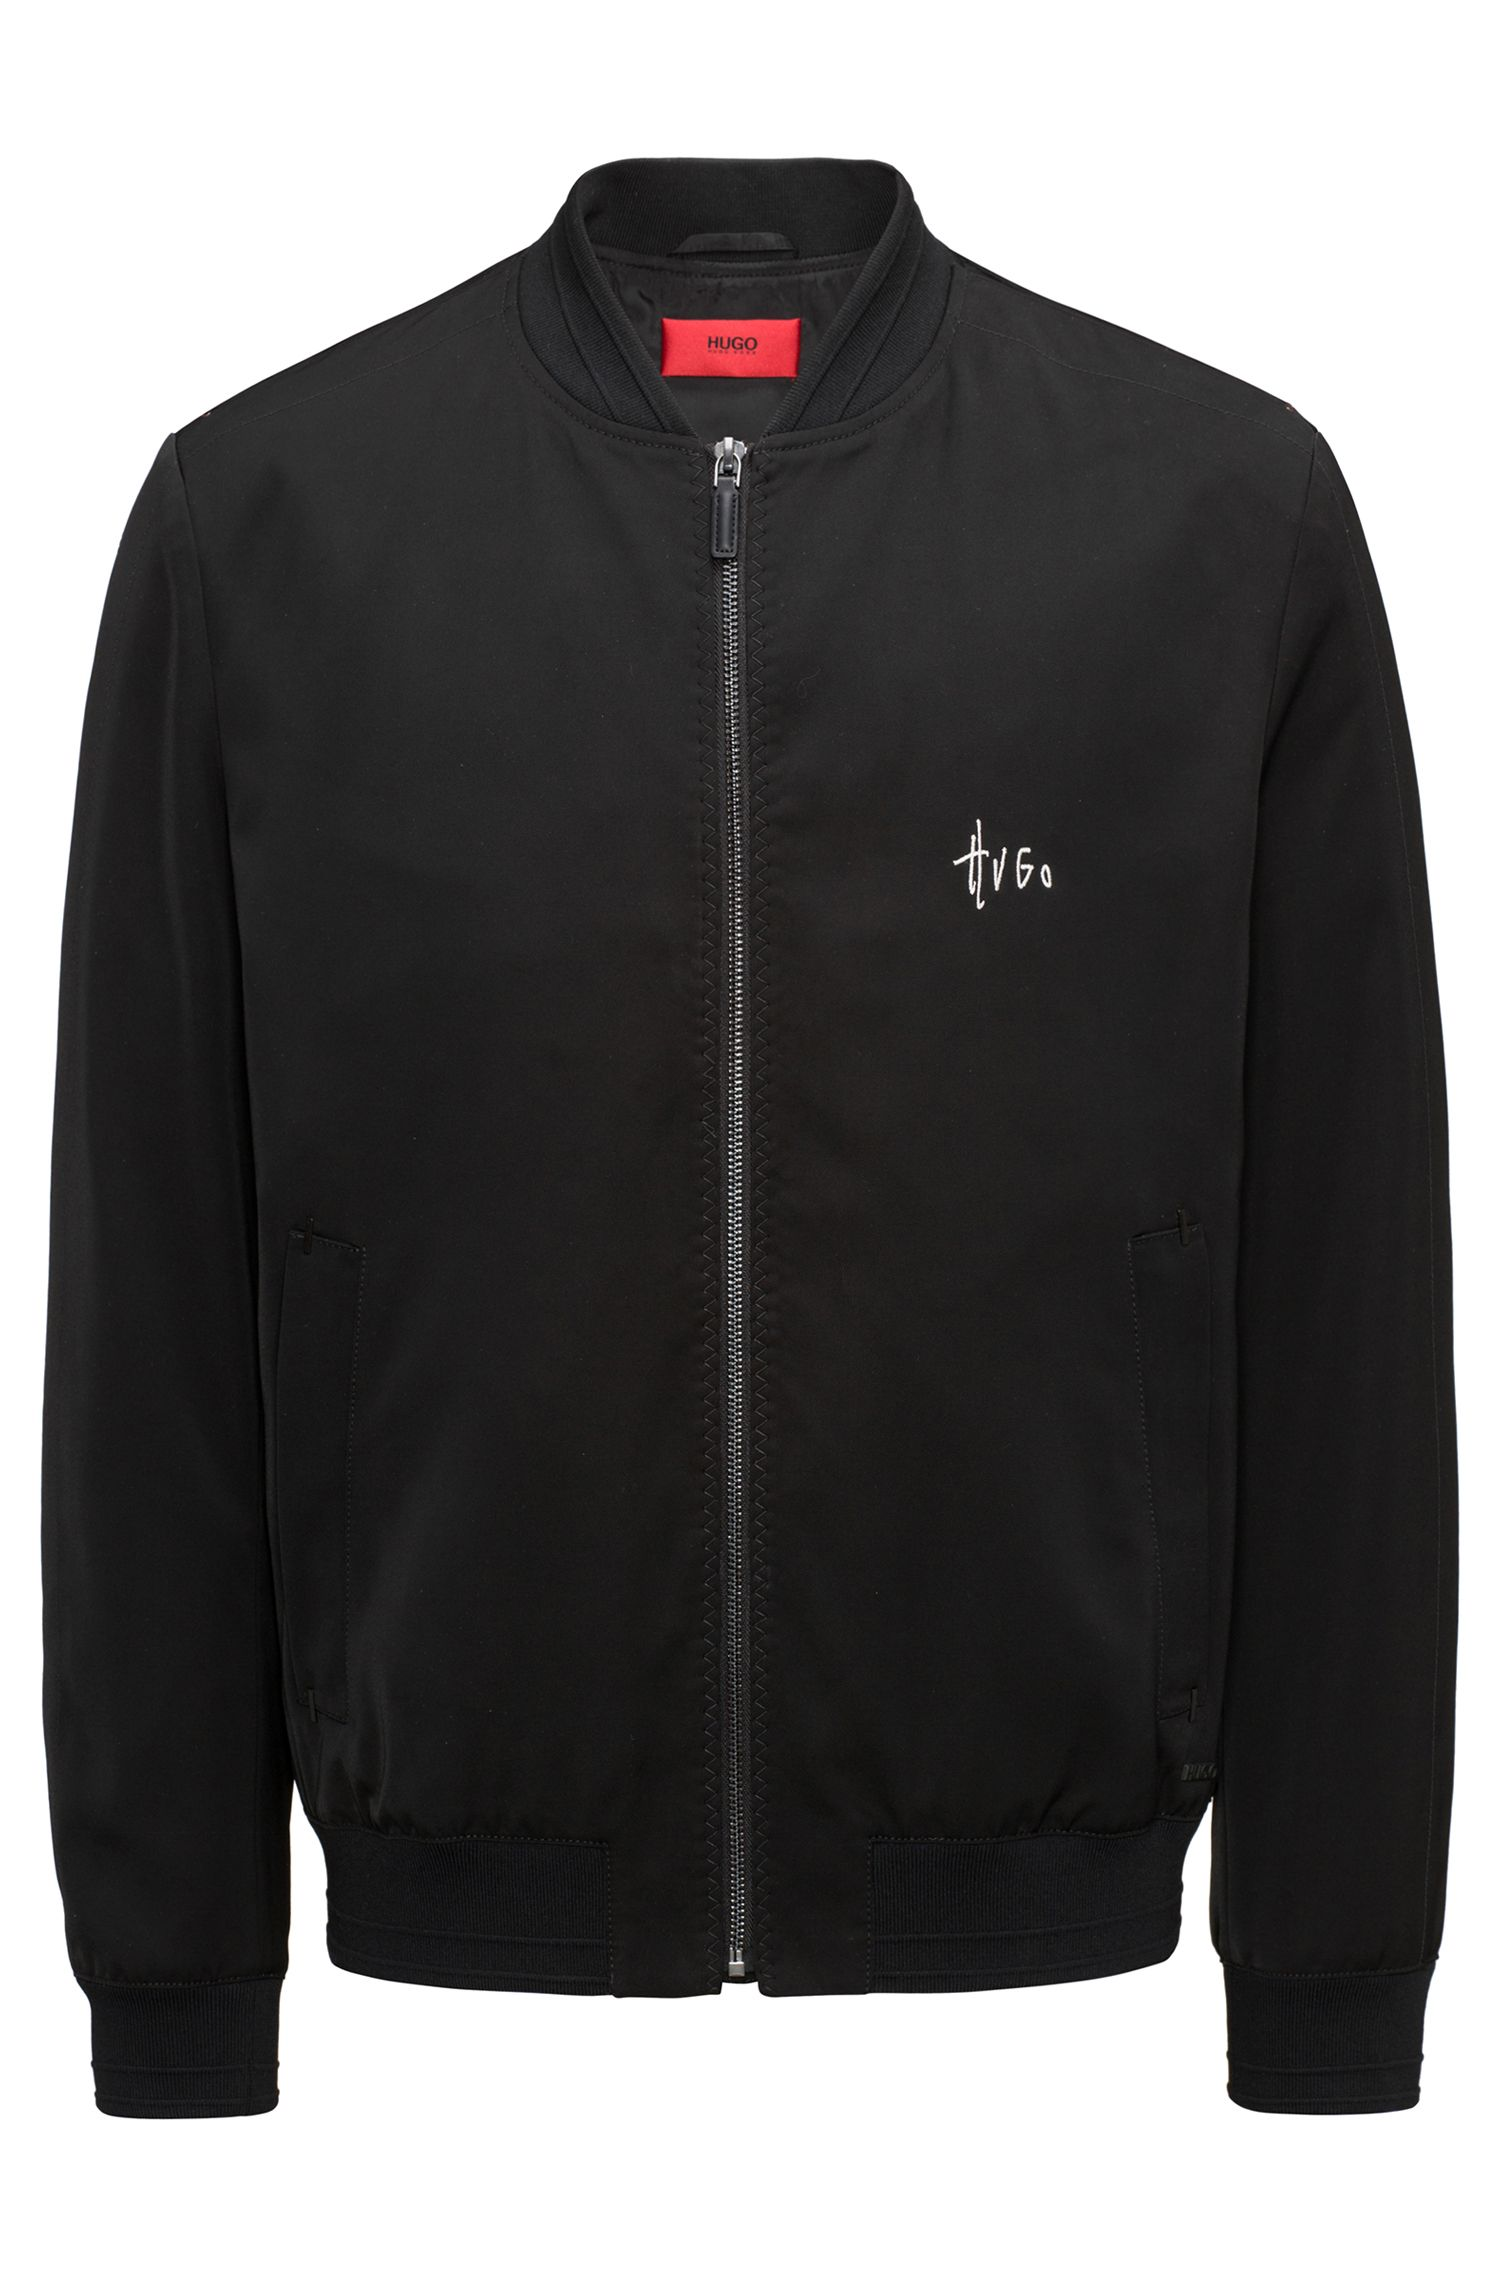 Slim-fit bomber jacket in a technical fabric with Teflon™ finish